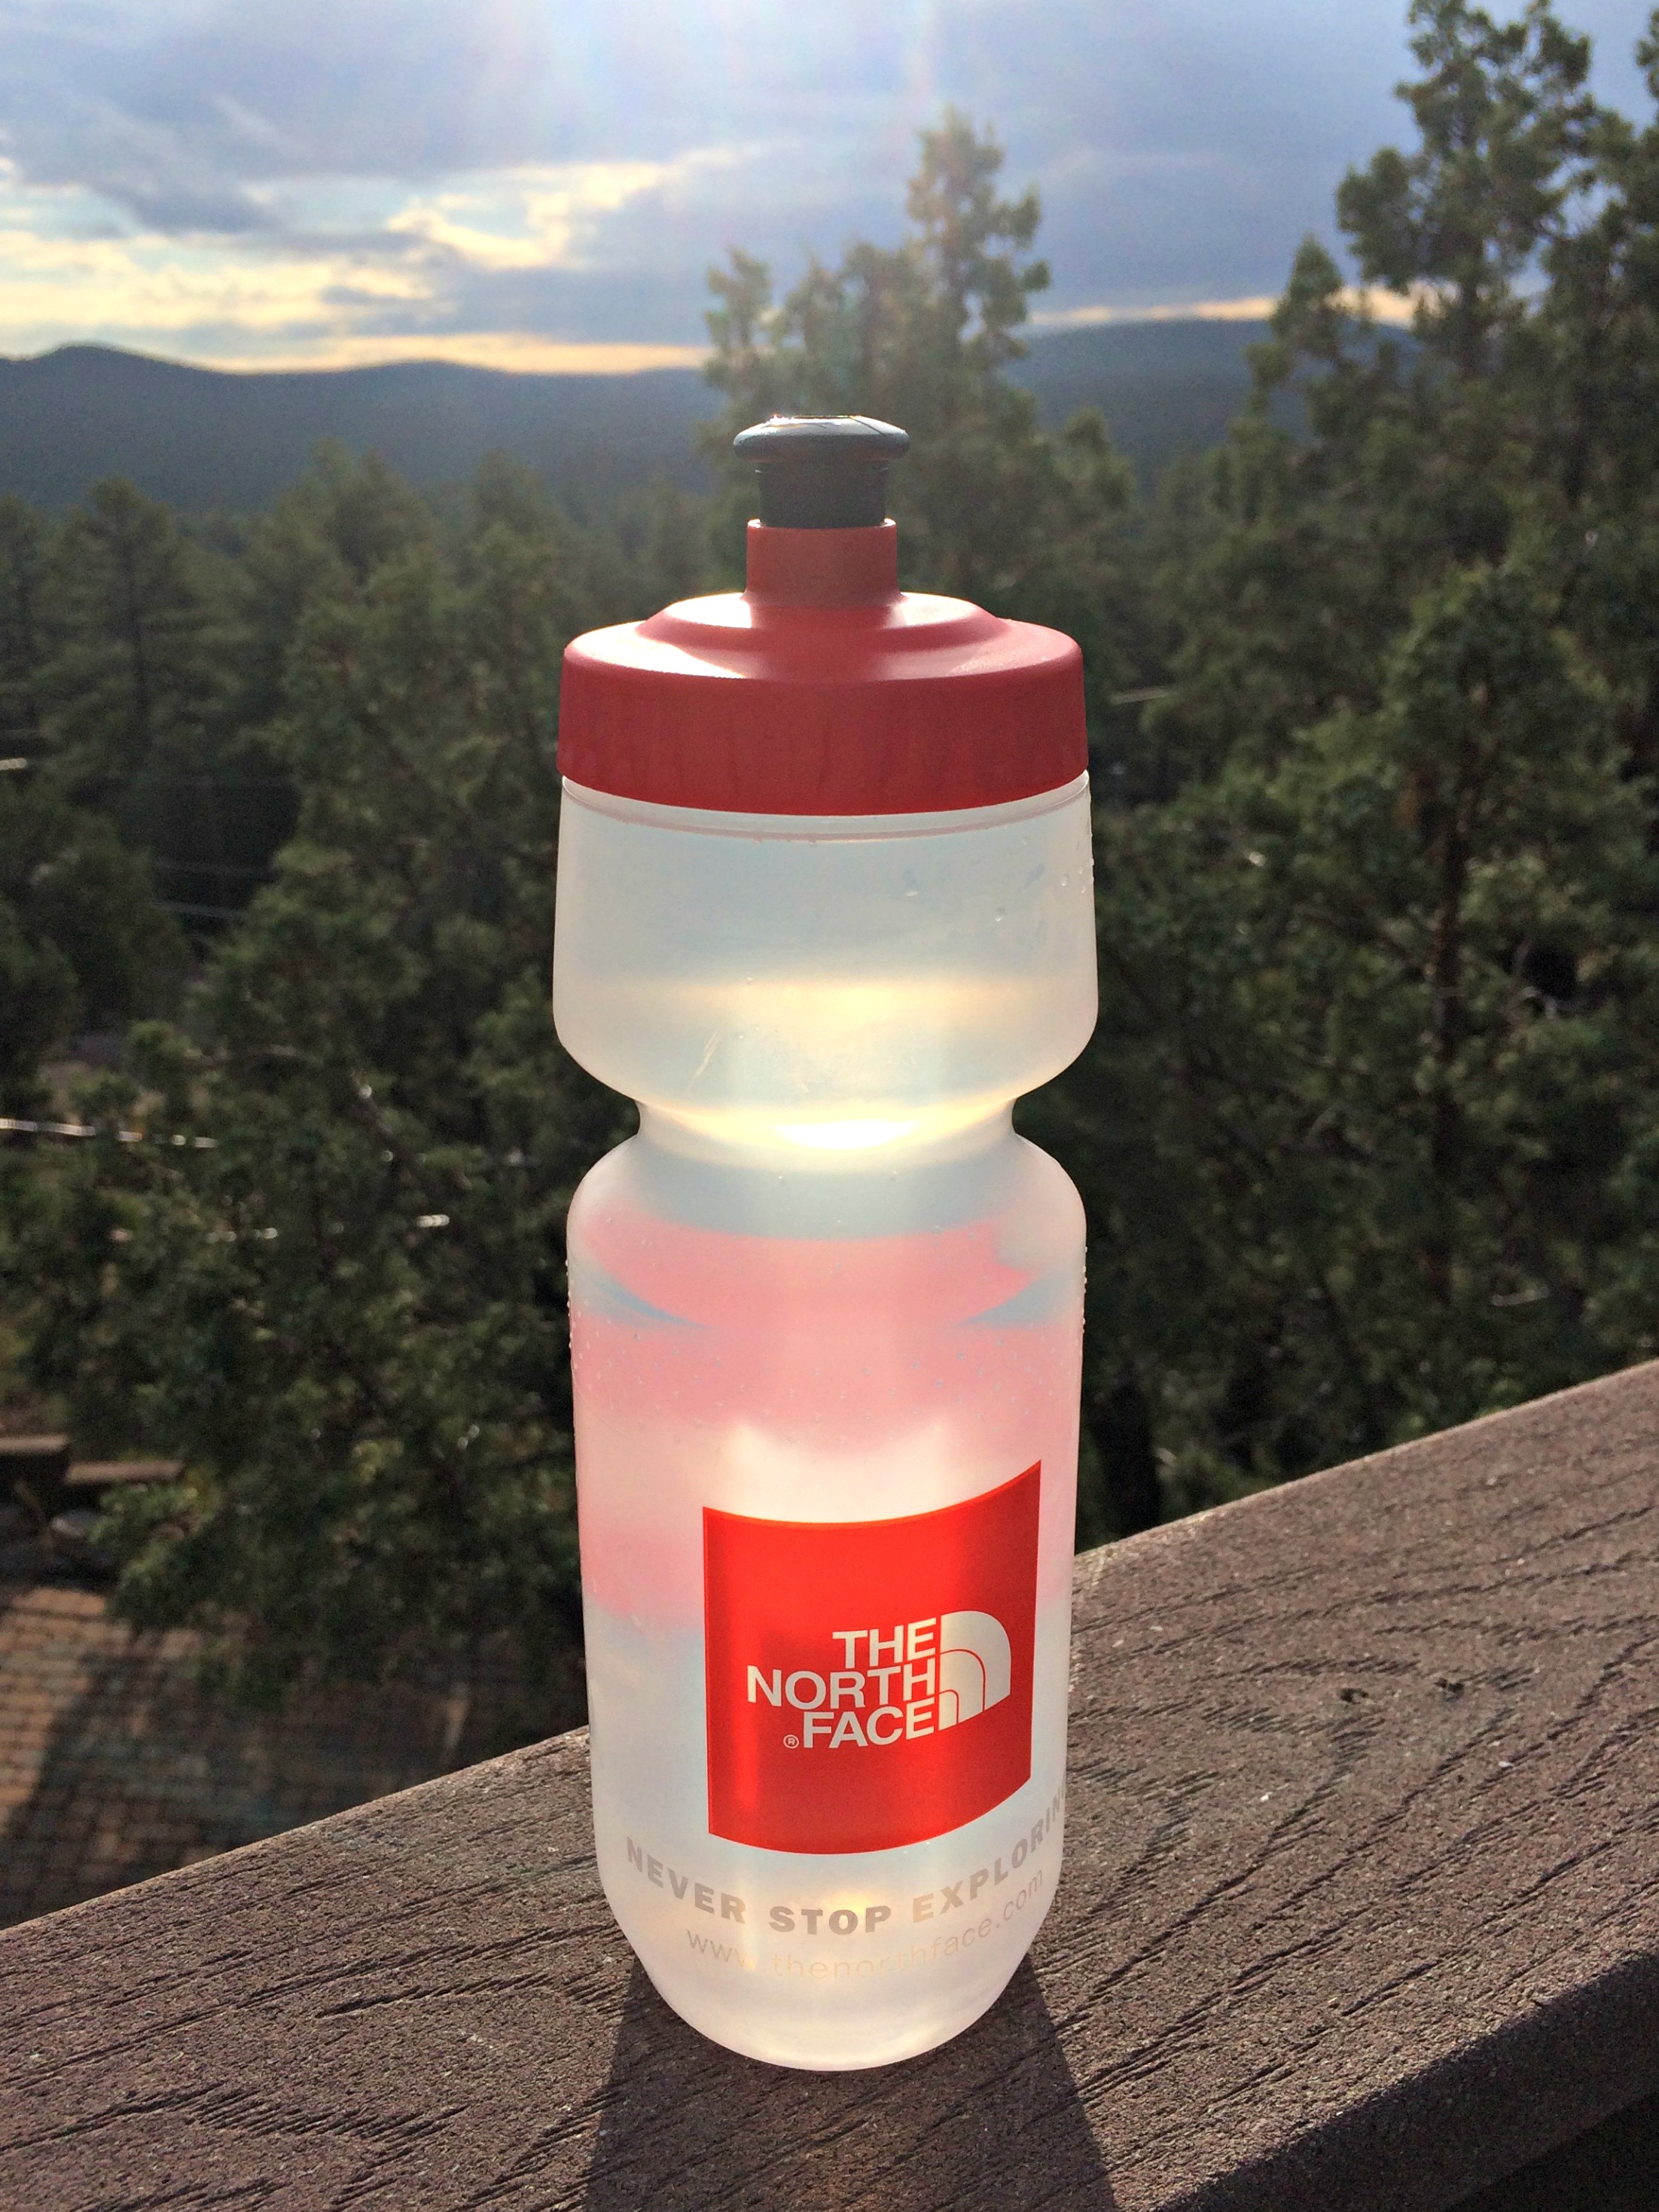 The North Face water bottle